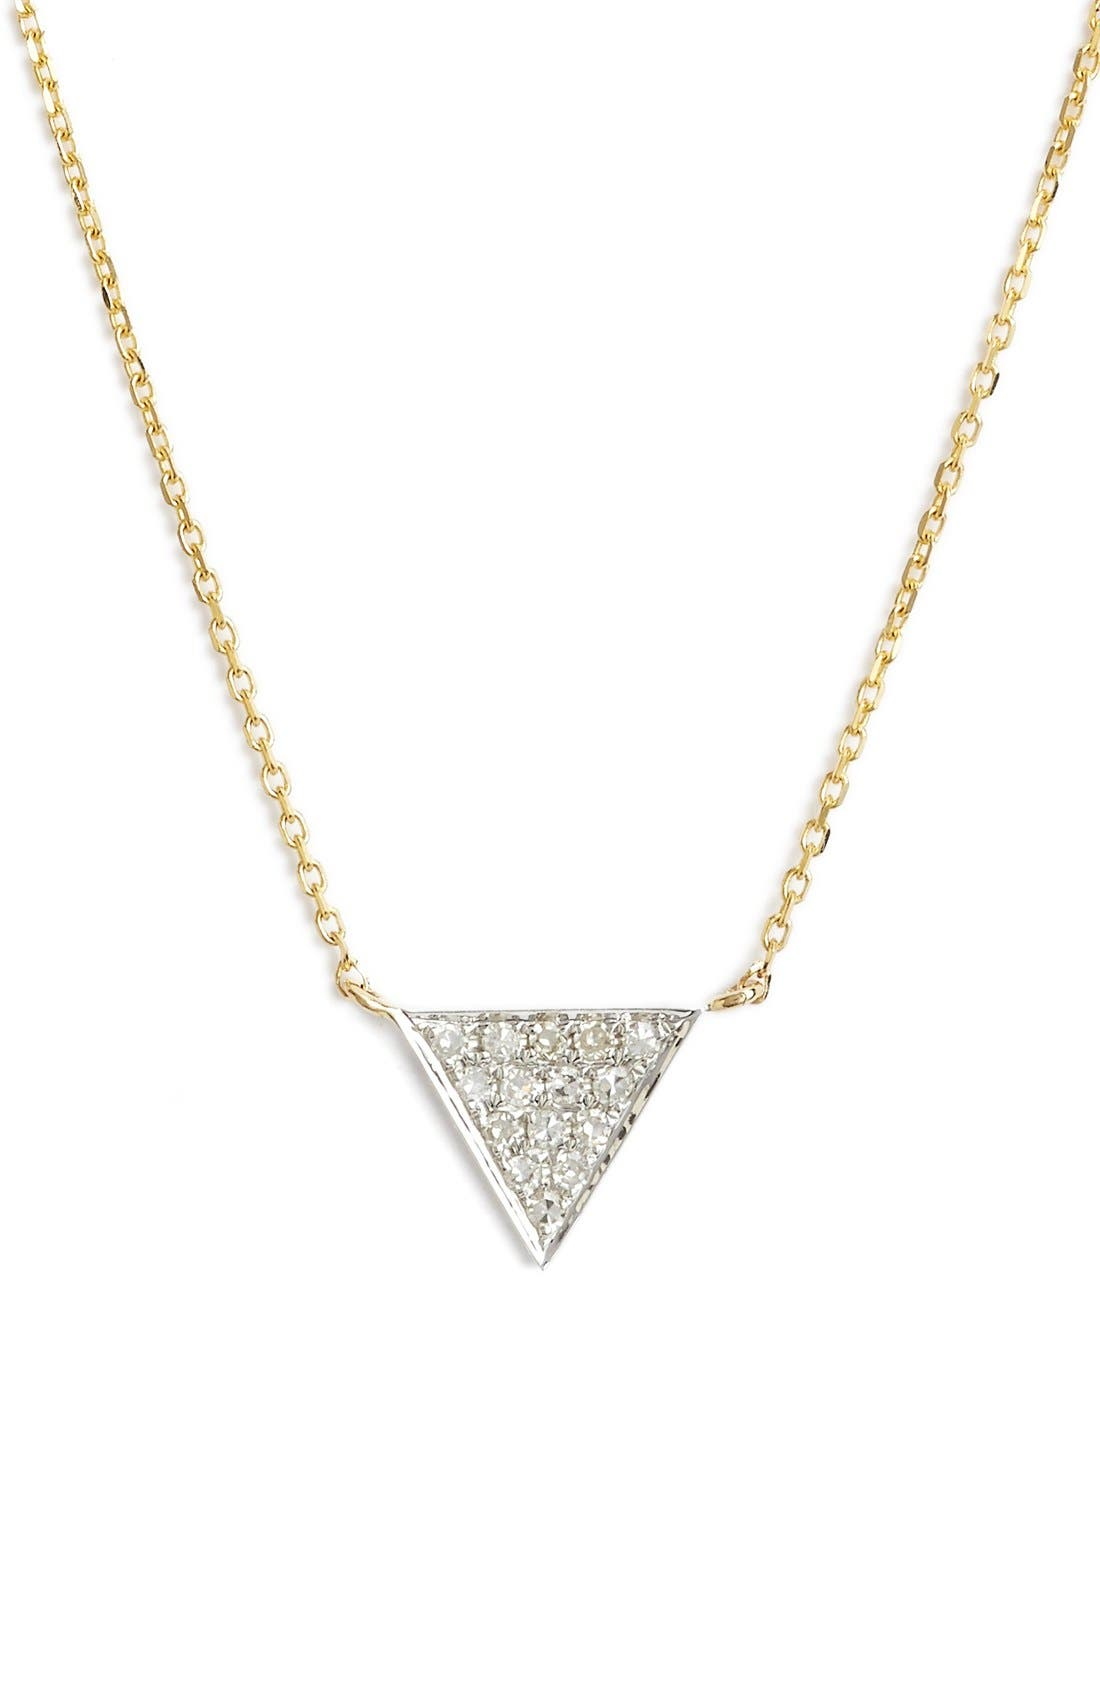 'Emily Sarah' Diamond Triangle Pendant Necklace,                             Main thumbnail 1, color,                             YELLOW GOLD